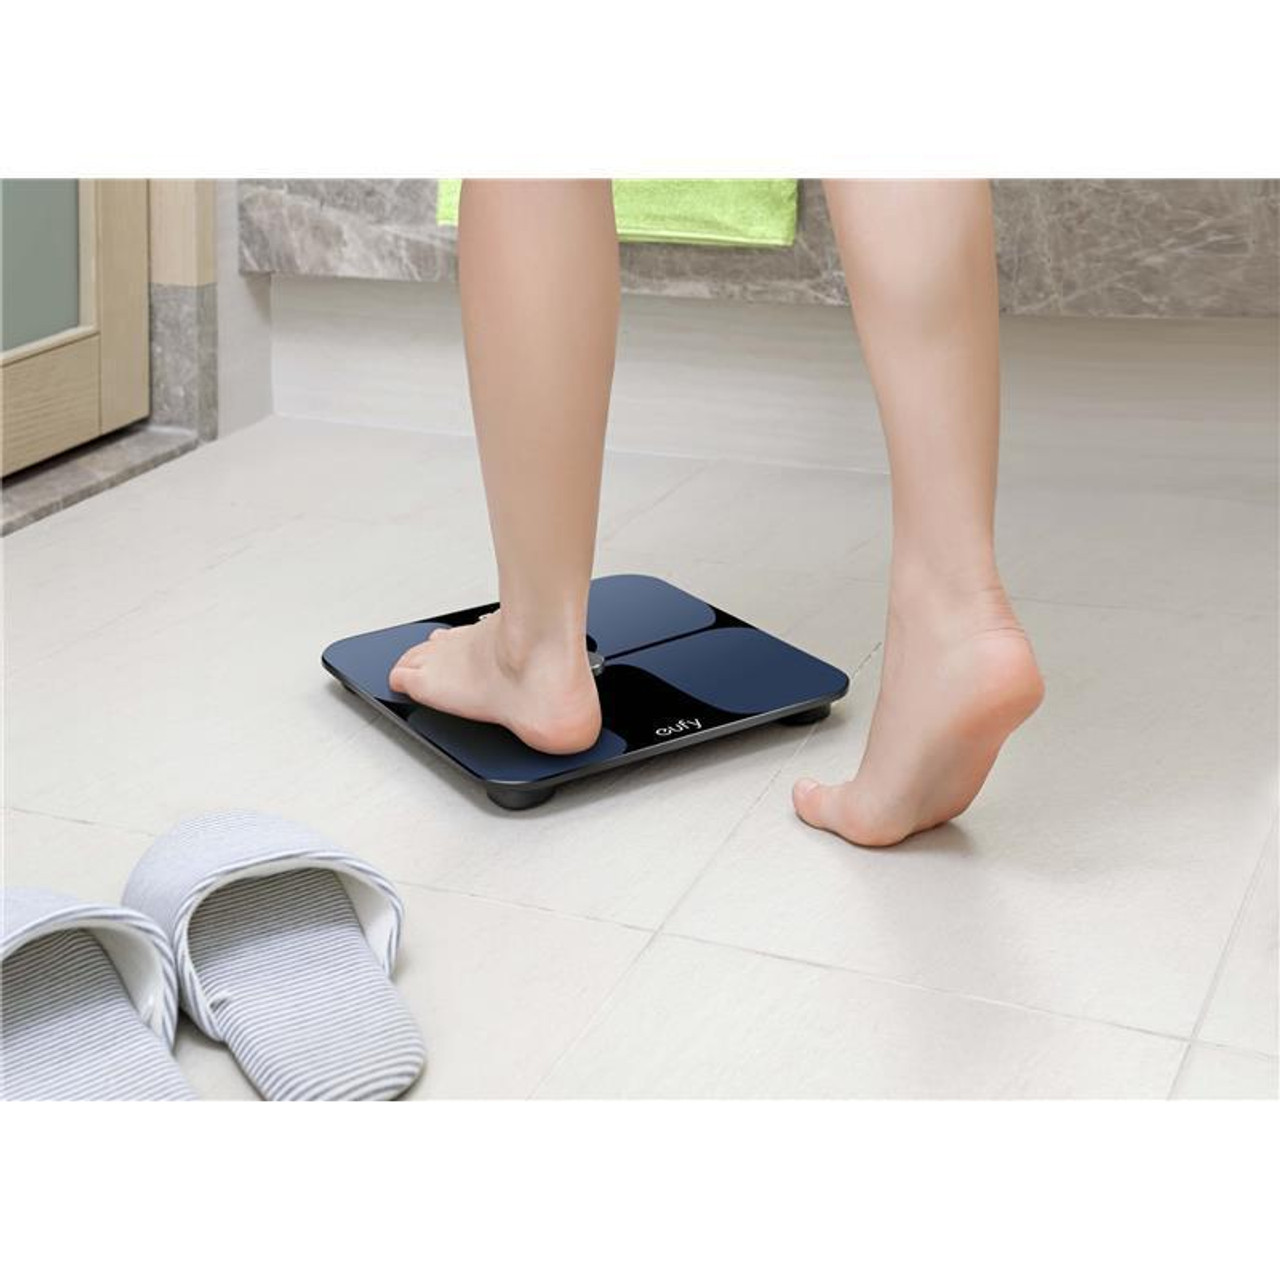 Eufy AK-T2109111 Bodysense 12 Measurement LED Smart Scale with Bluetooth - White/Black